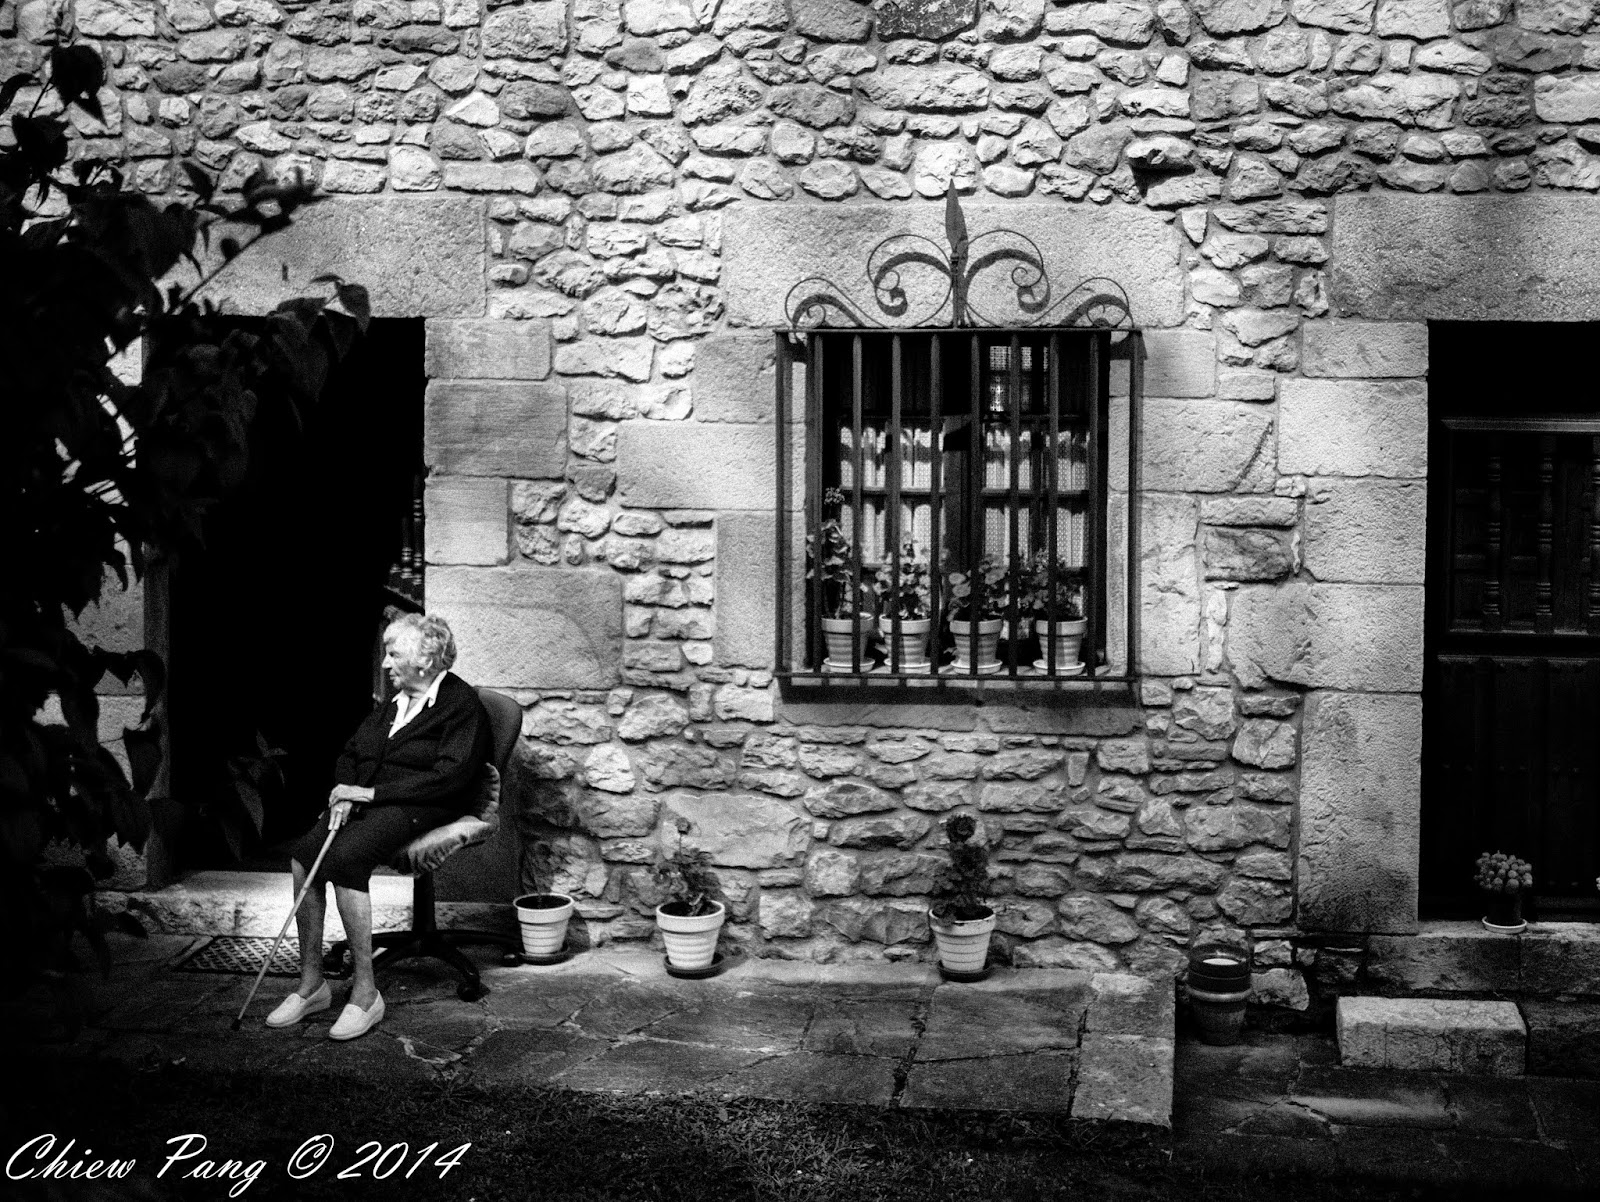 Santillana del Mar, Cantabria, review and photos